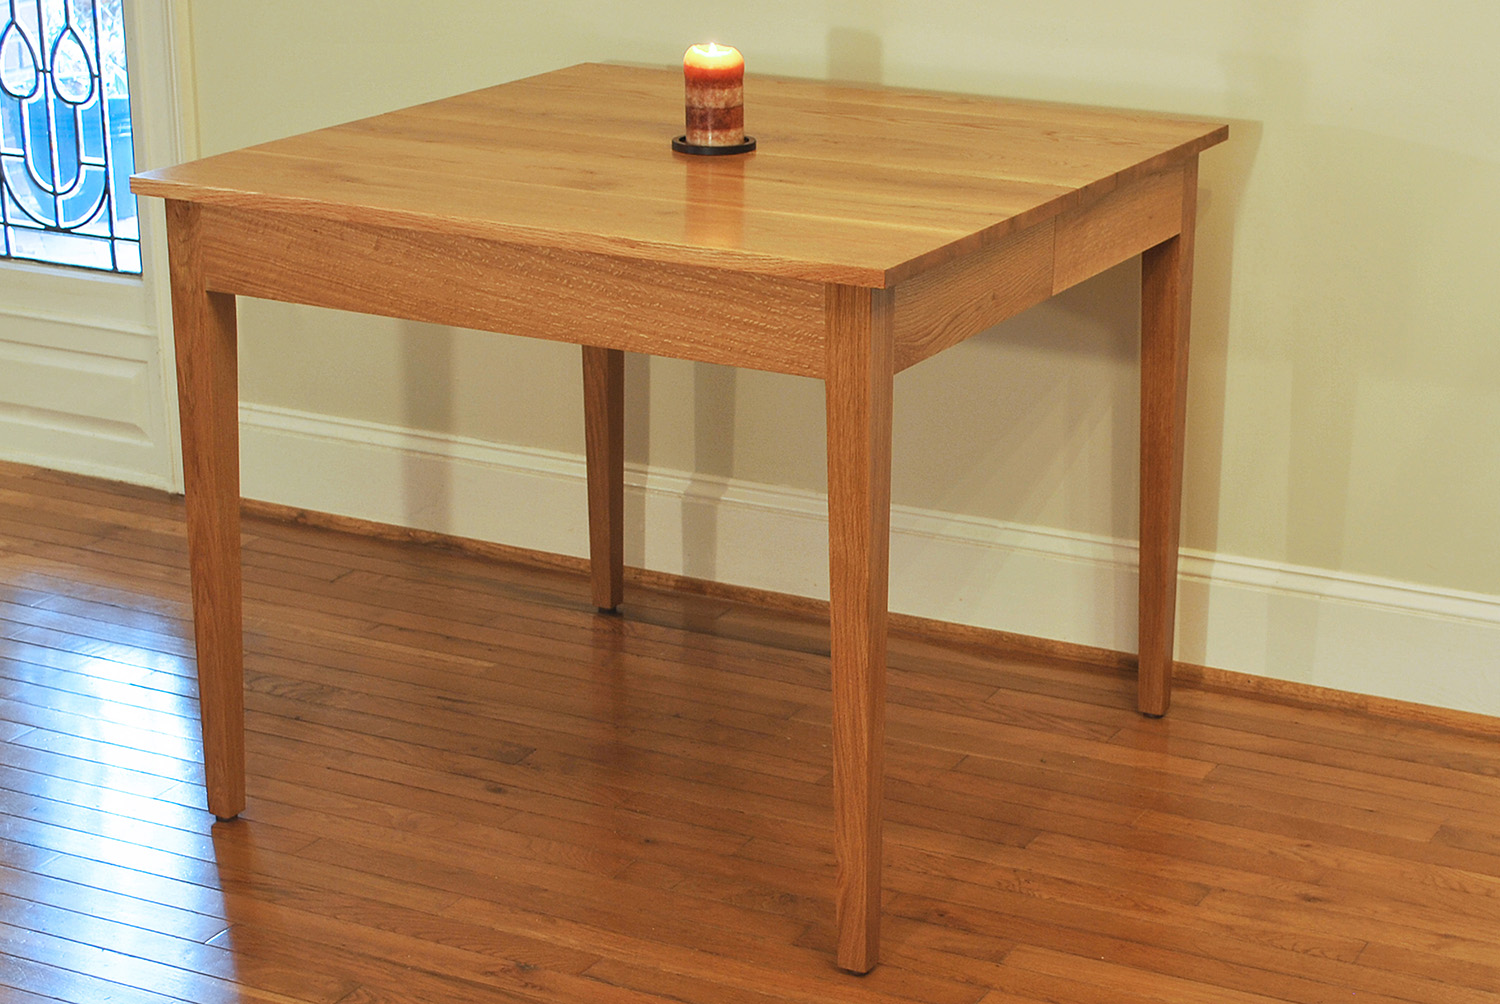 Small-Kitchen-Table.jpg